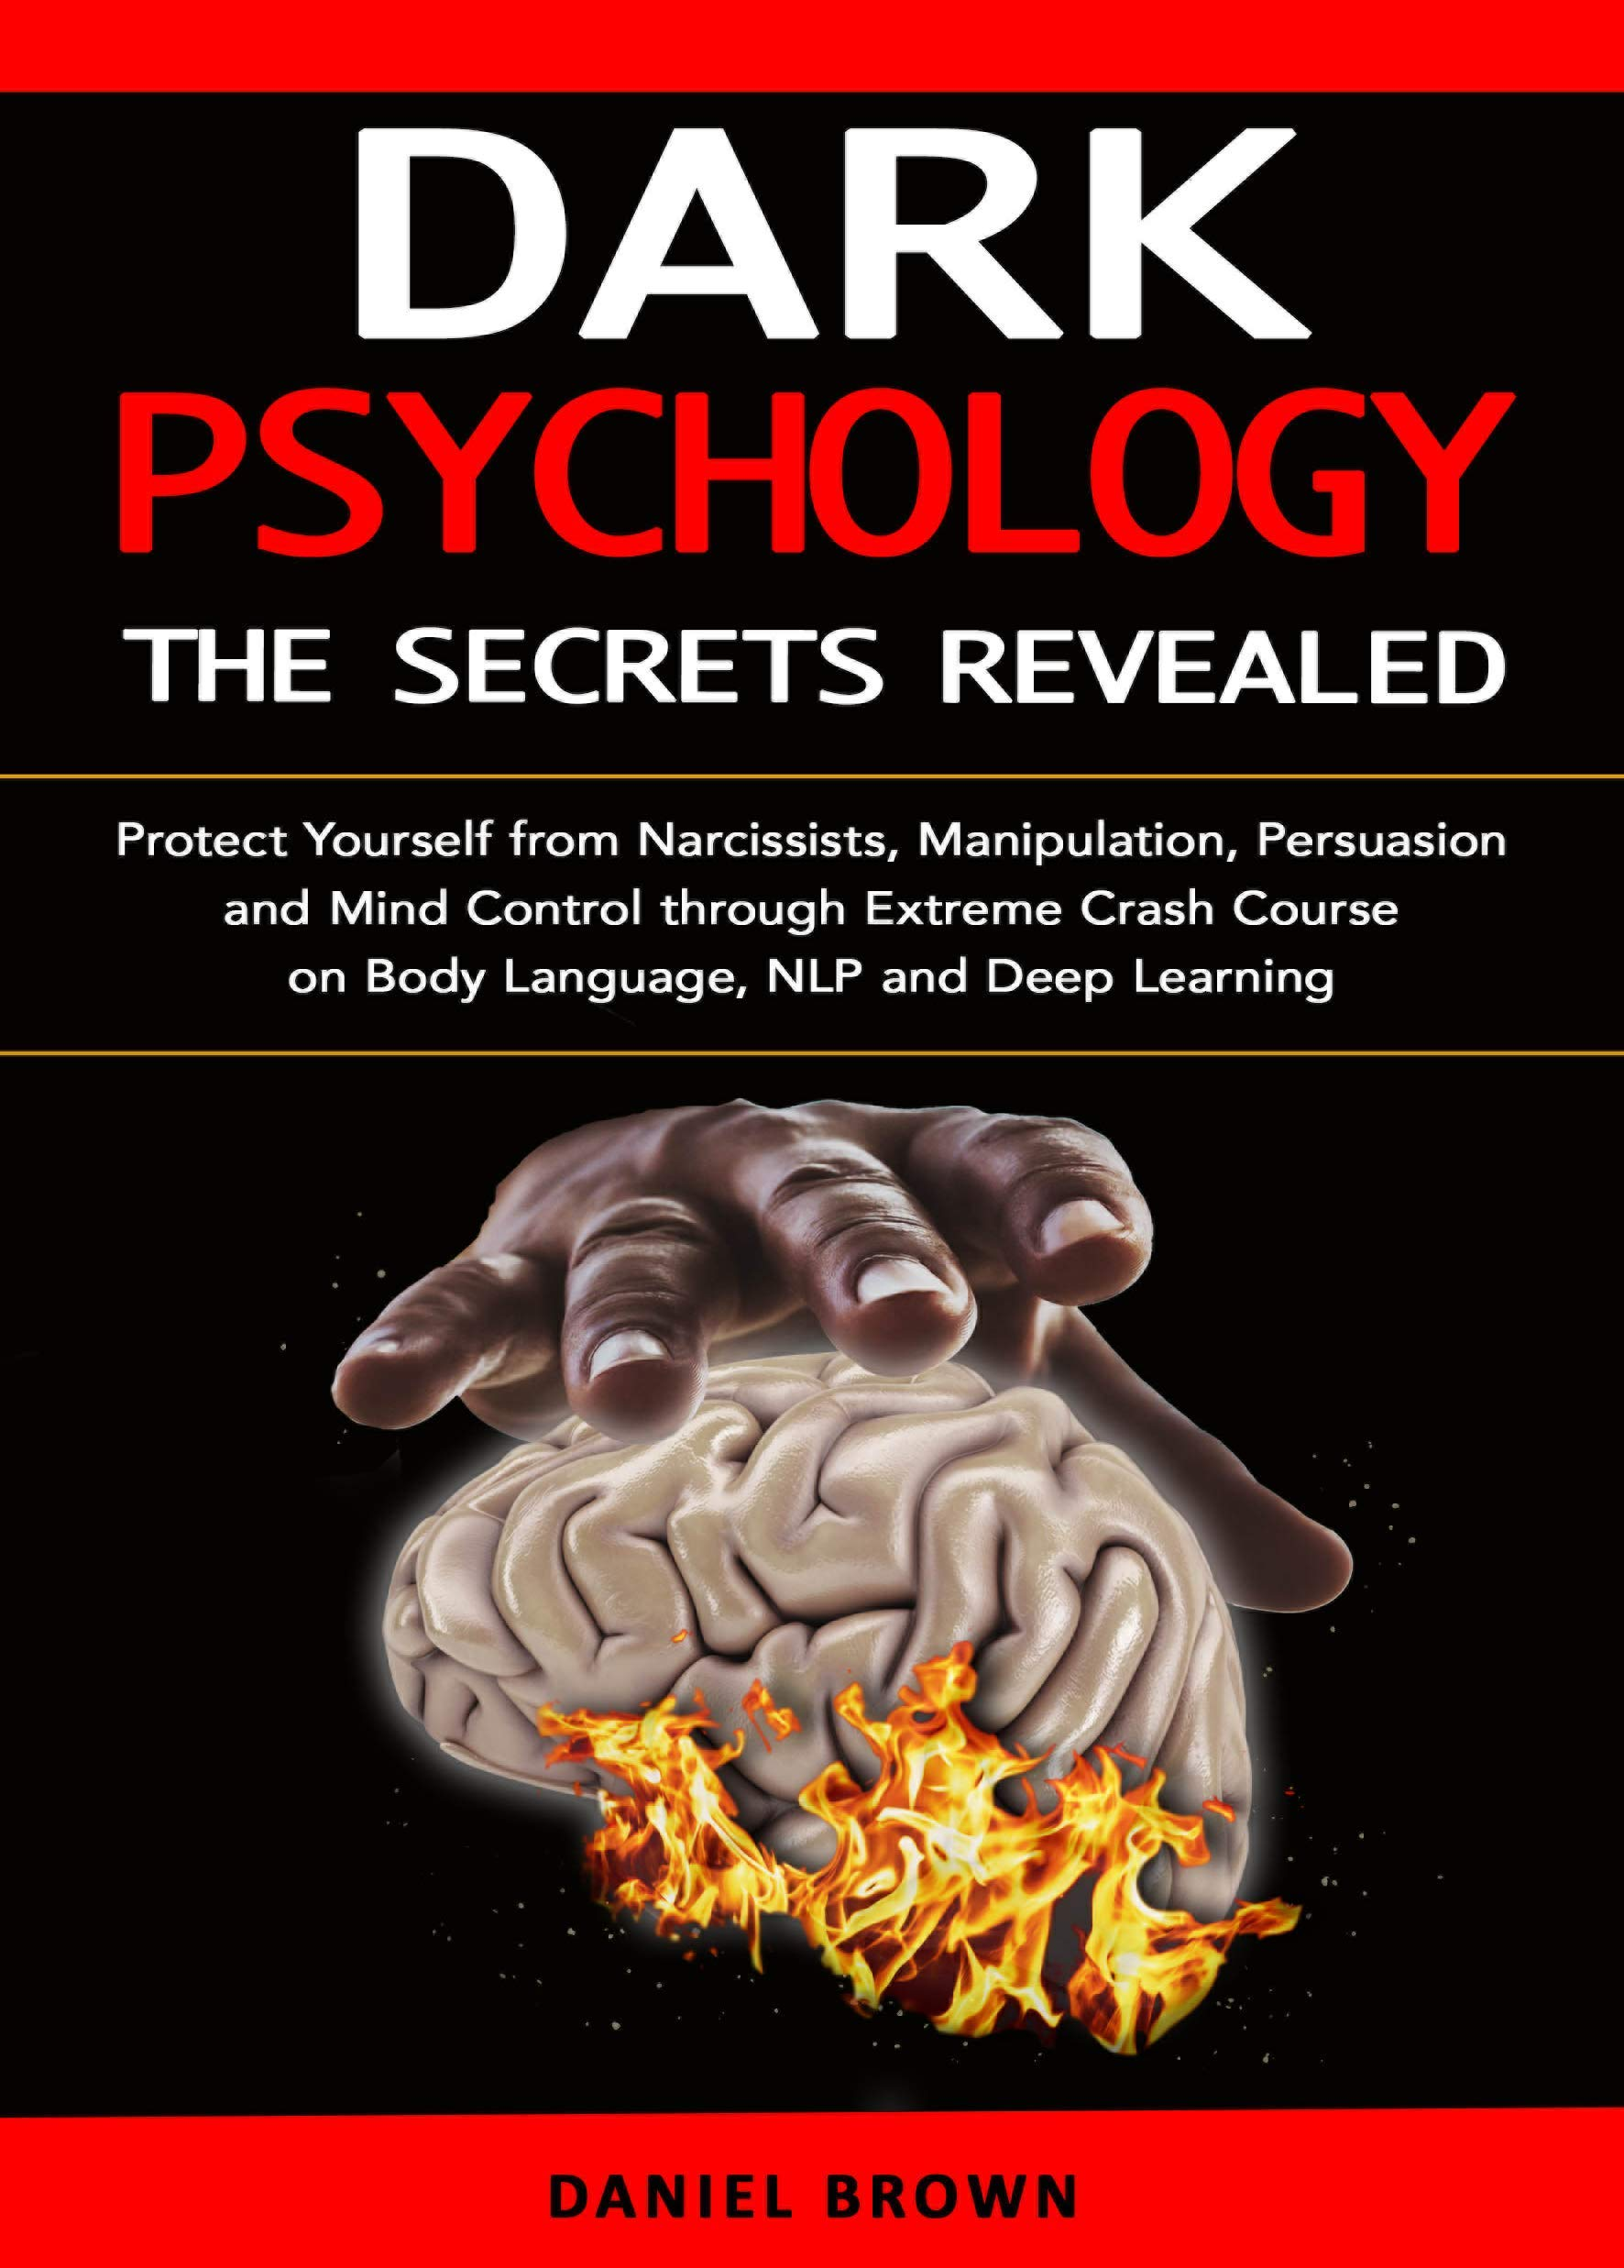 Dark Psychology: The SECRETS Revealed: Protect Yourself From Narcissists, Manipulation, Persuasion, and Mind Control Through an Extreme Crash Course on Body Language, NLP, and Deep Learning